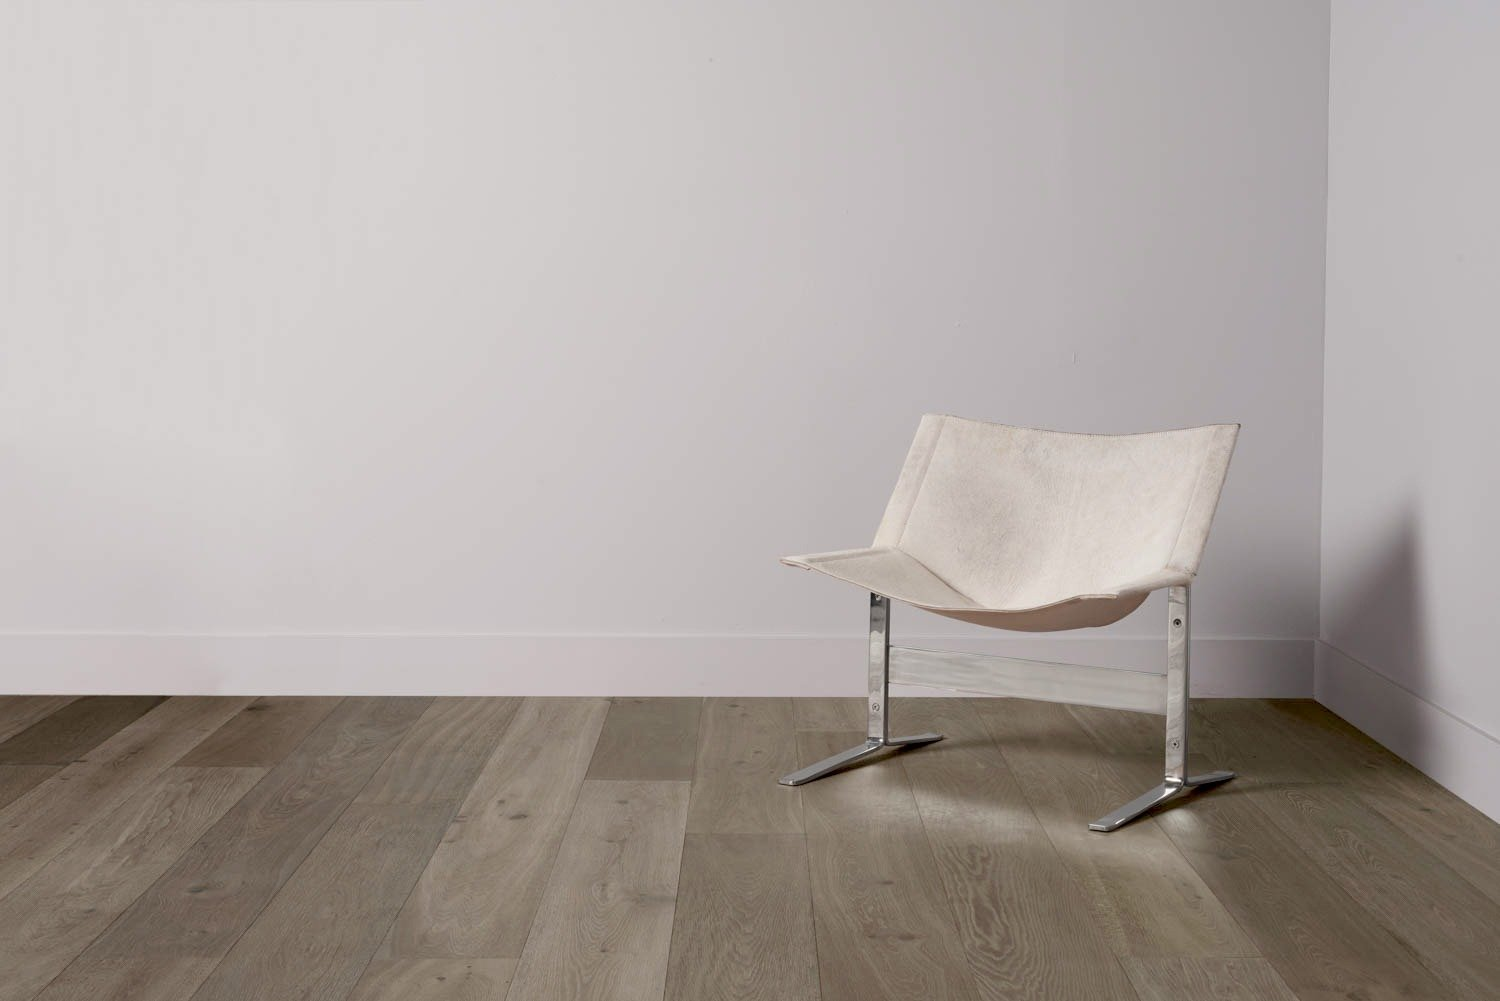 Pistoria flooring and chair in right corner